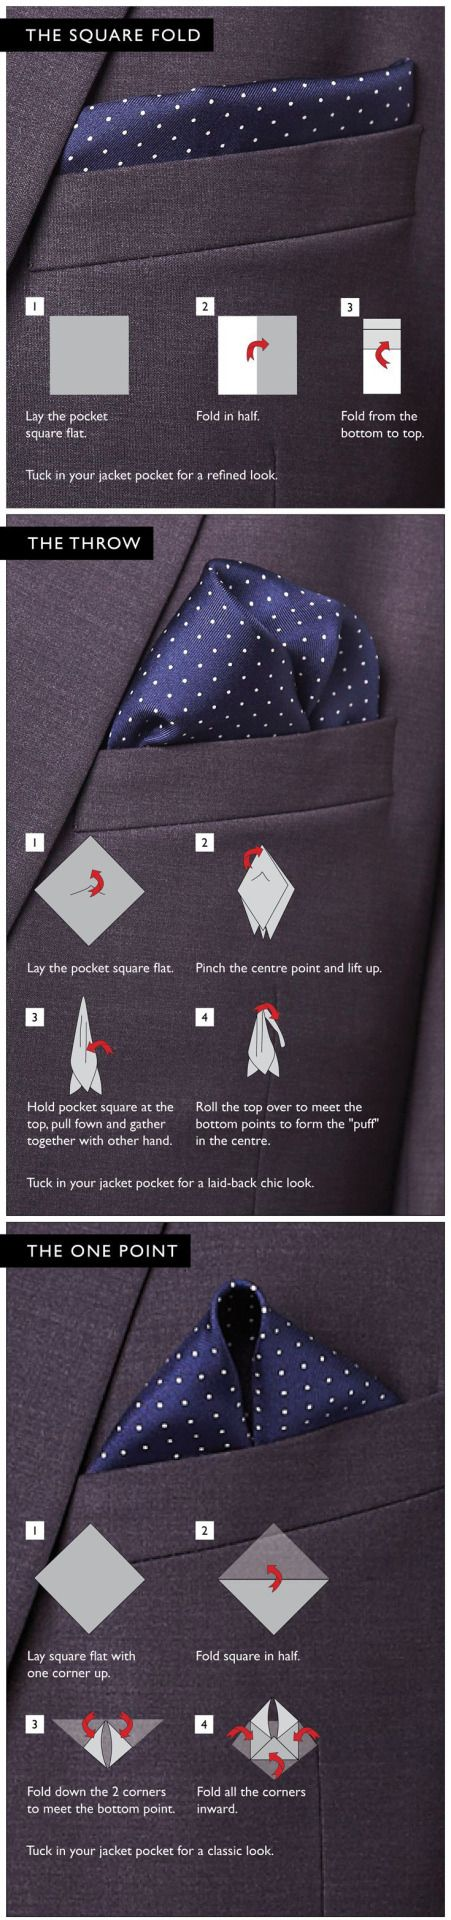 Pocket Square tutorial... Great infographic.